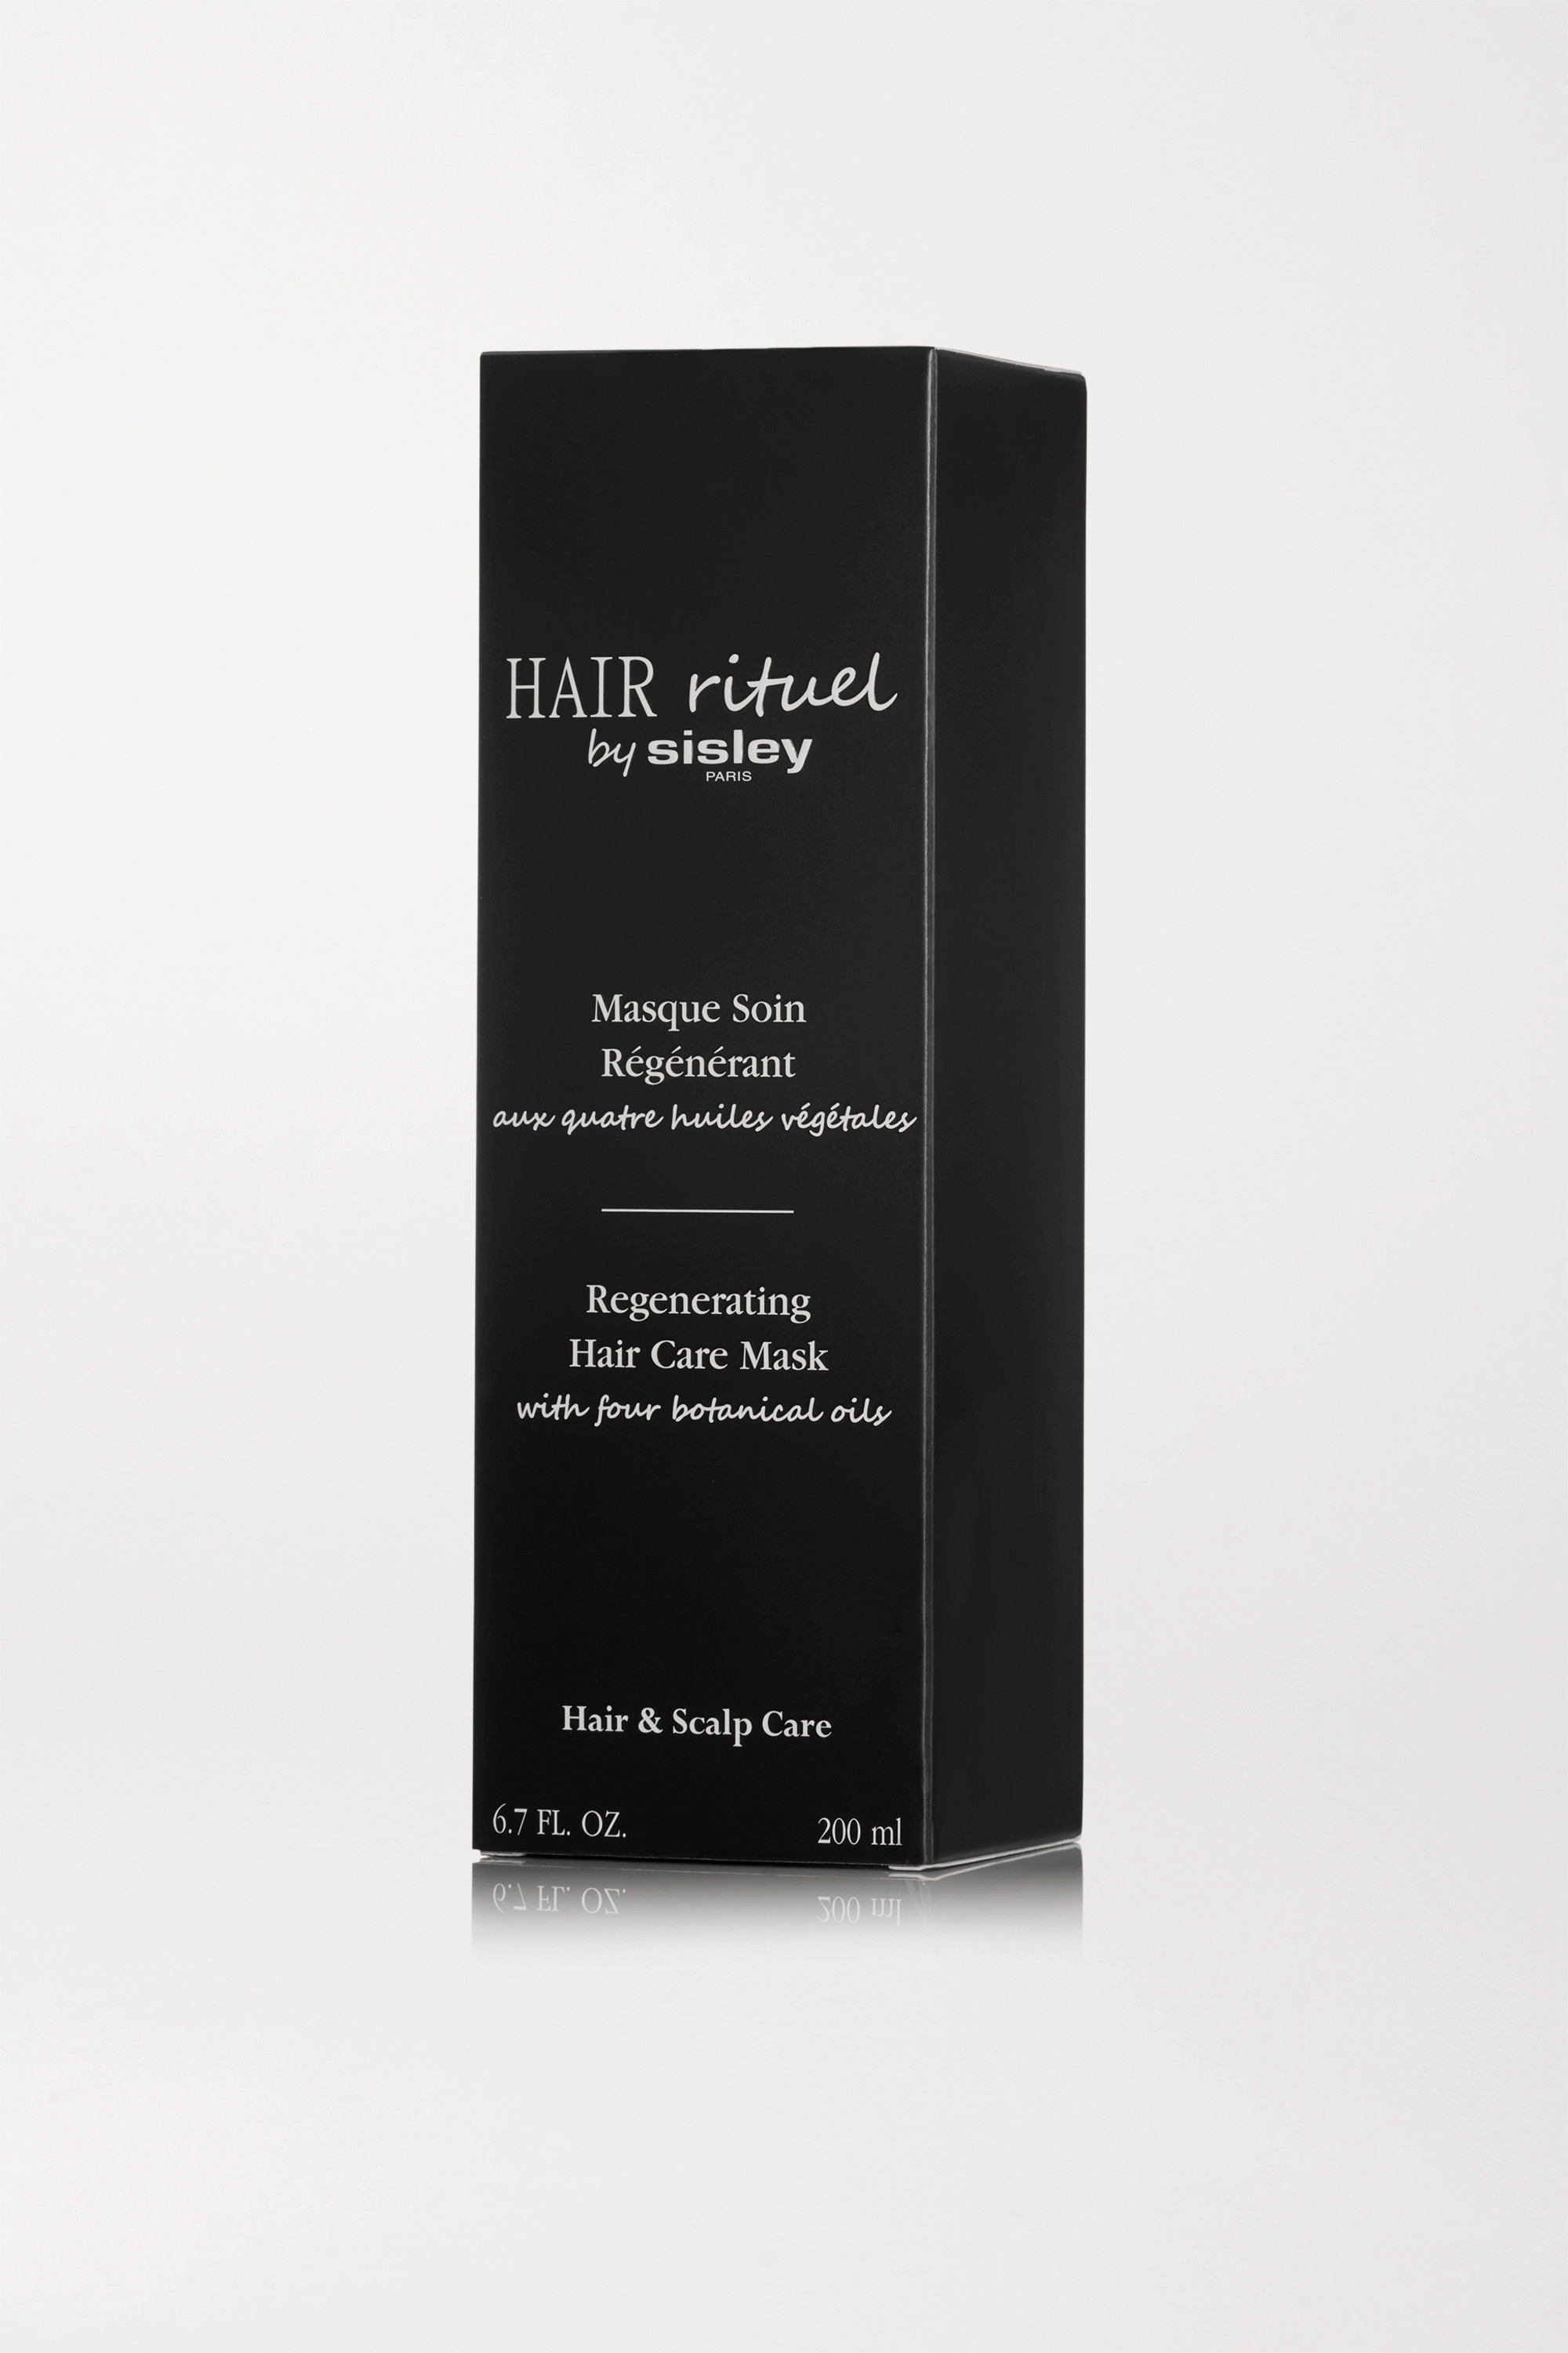 HAIR rituel by Sisley Regenerating Hair Care Mask with Four Botanical Oils, 200ml